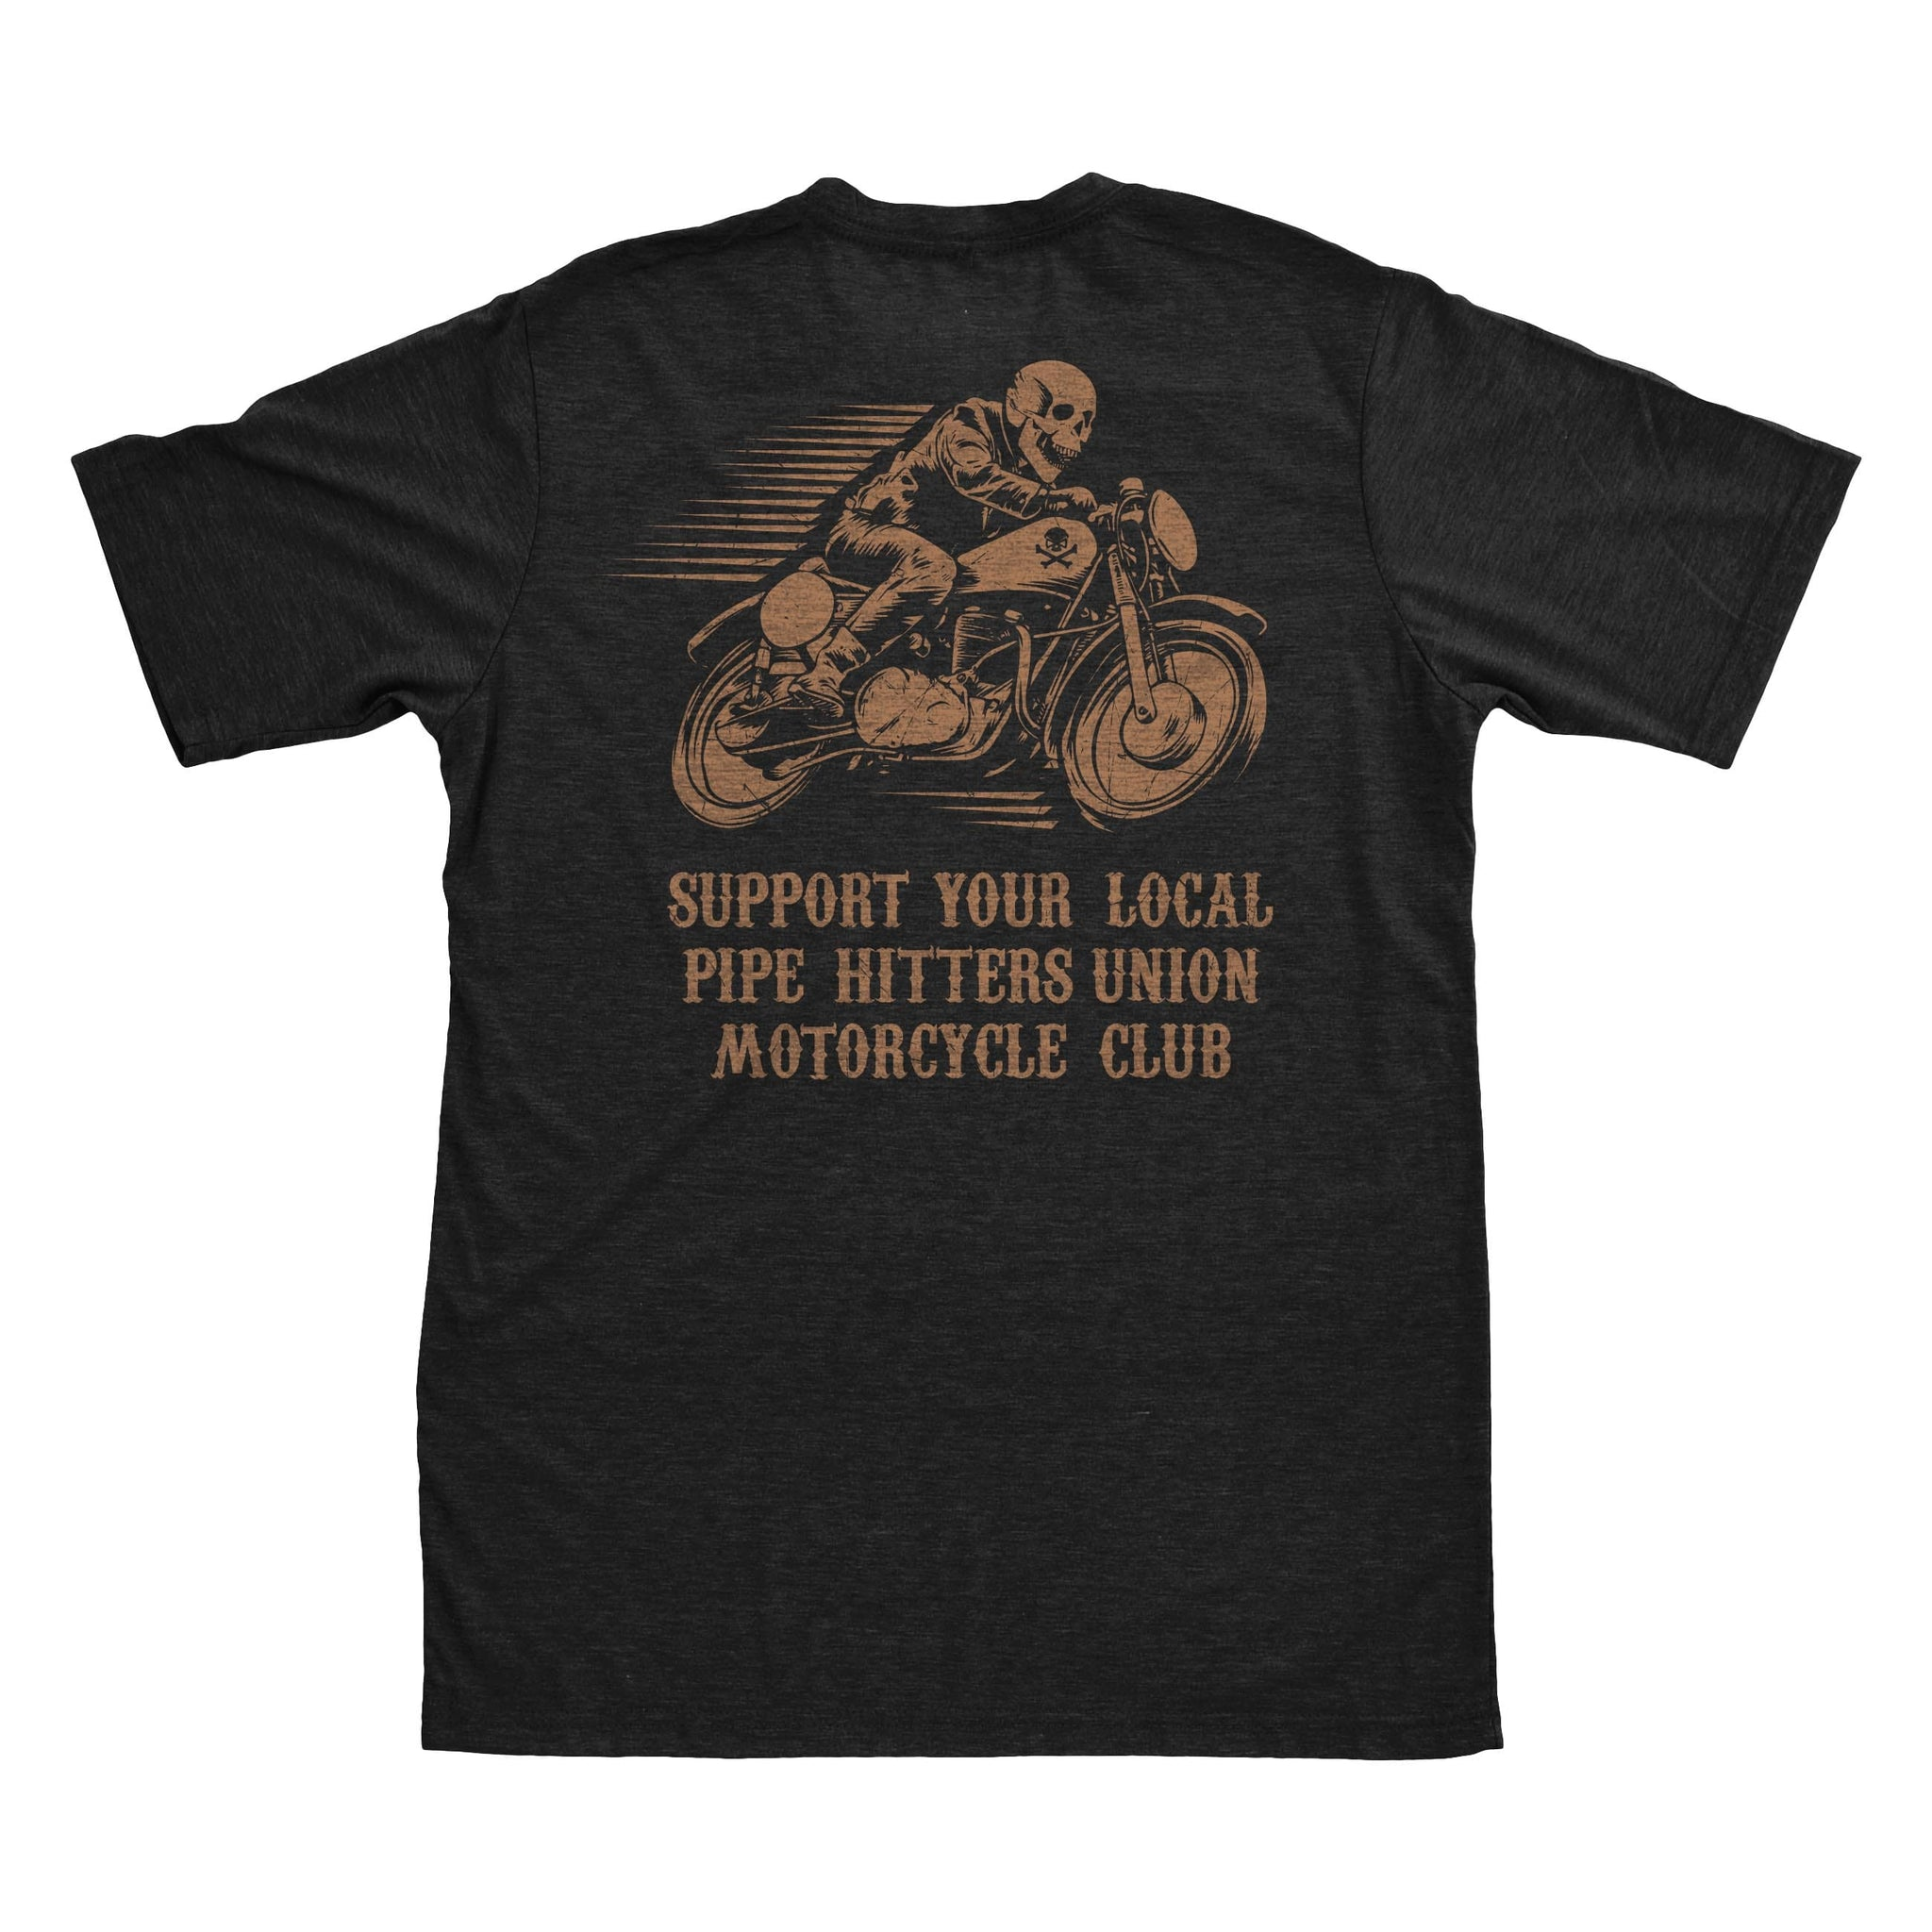 PHUMC Support Tee - Skeleton Biker - Black - T-Shirts - Pipe Hitters Union